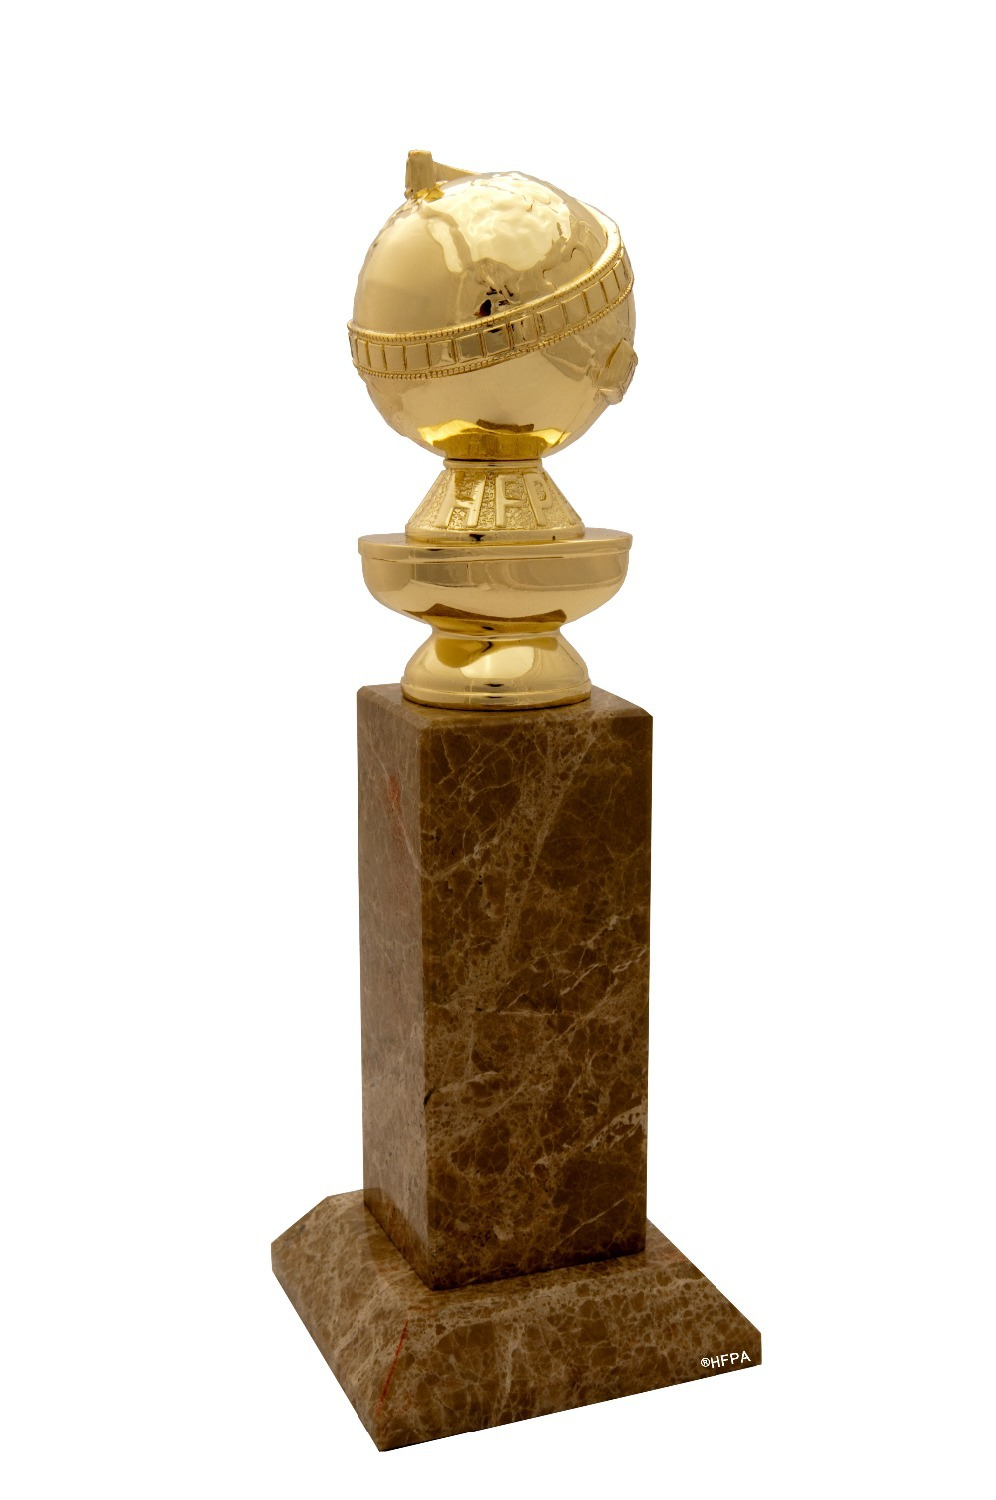 3909725882 moreover And The Blendster Award Goes To as well Trophy Award Ceremony Intro With Space For Title Text Nomination Gold Cup Zvgw7c as well Awards Quotes likewise 528415. on academy award trophy